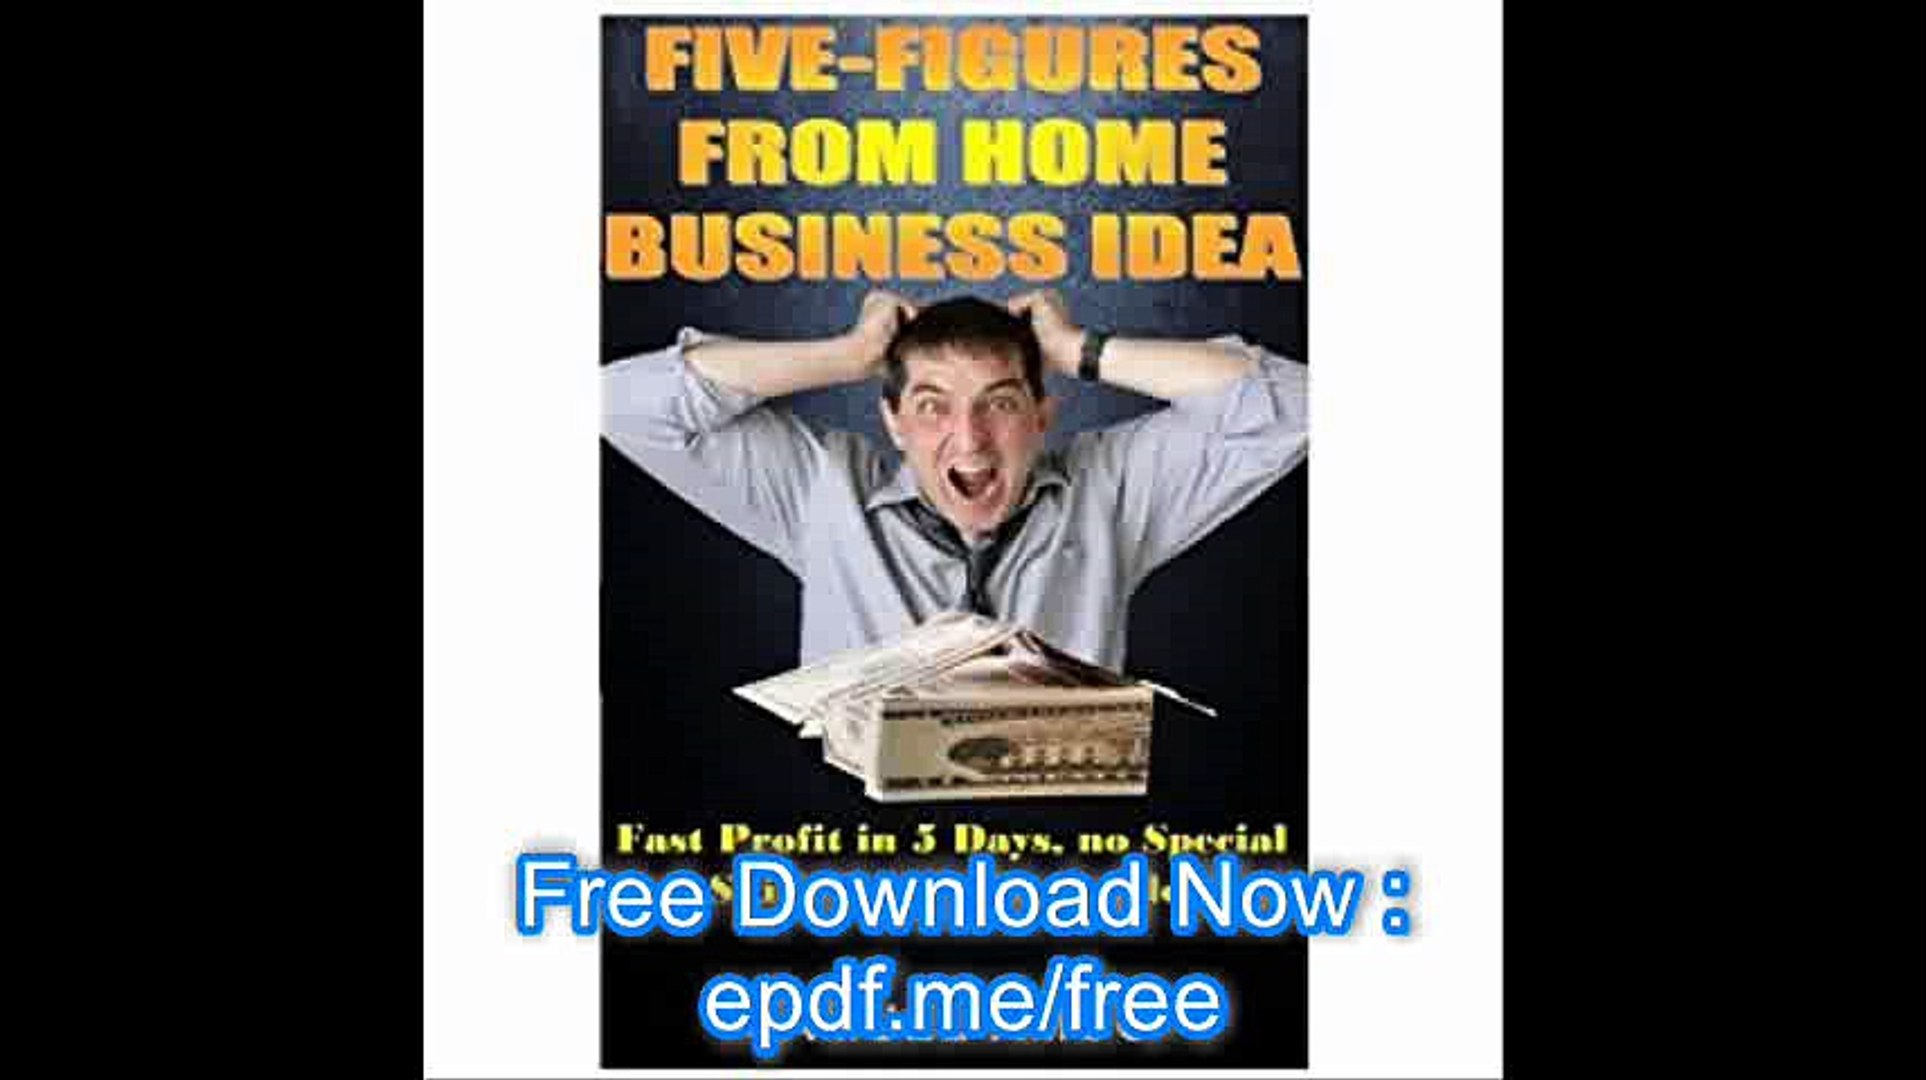 Five Figures From Home Business Idea Fast Profit in 5 Days, no Special Skills Inside Out guide.(The